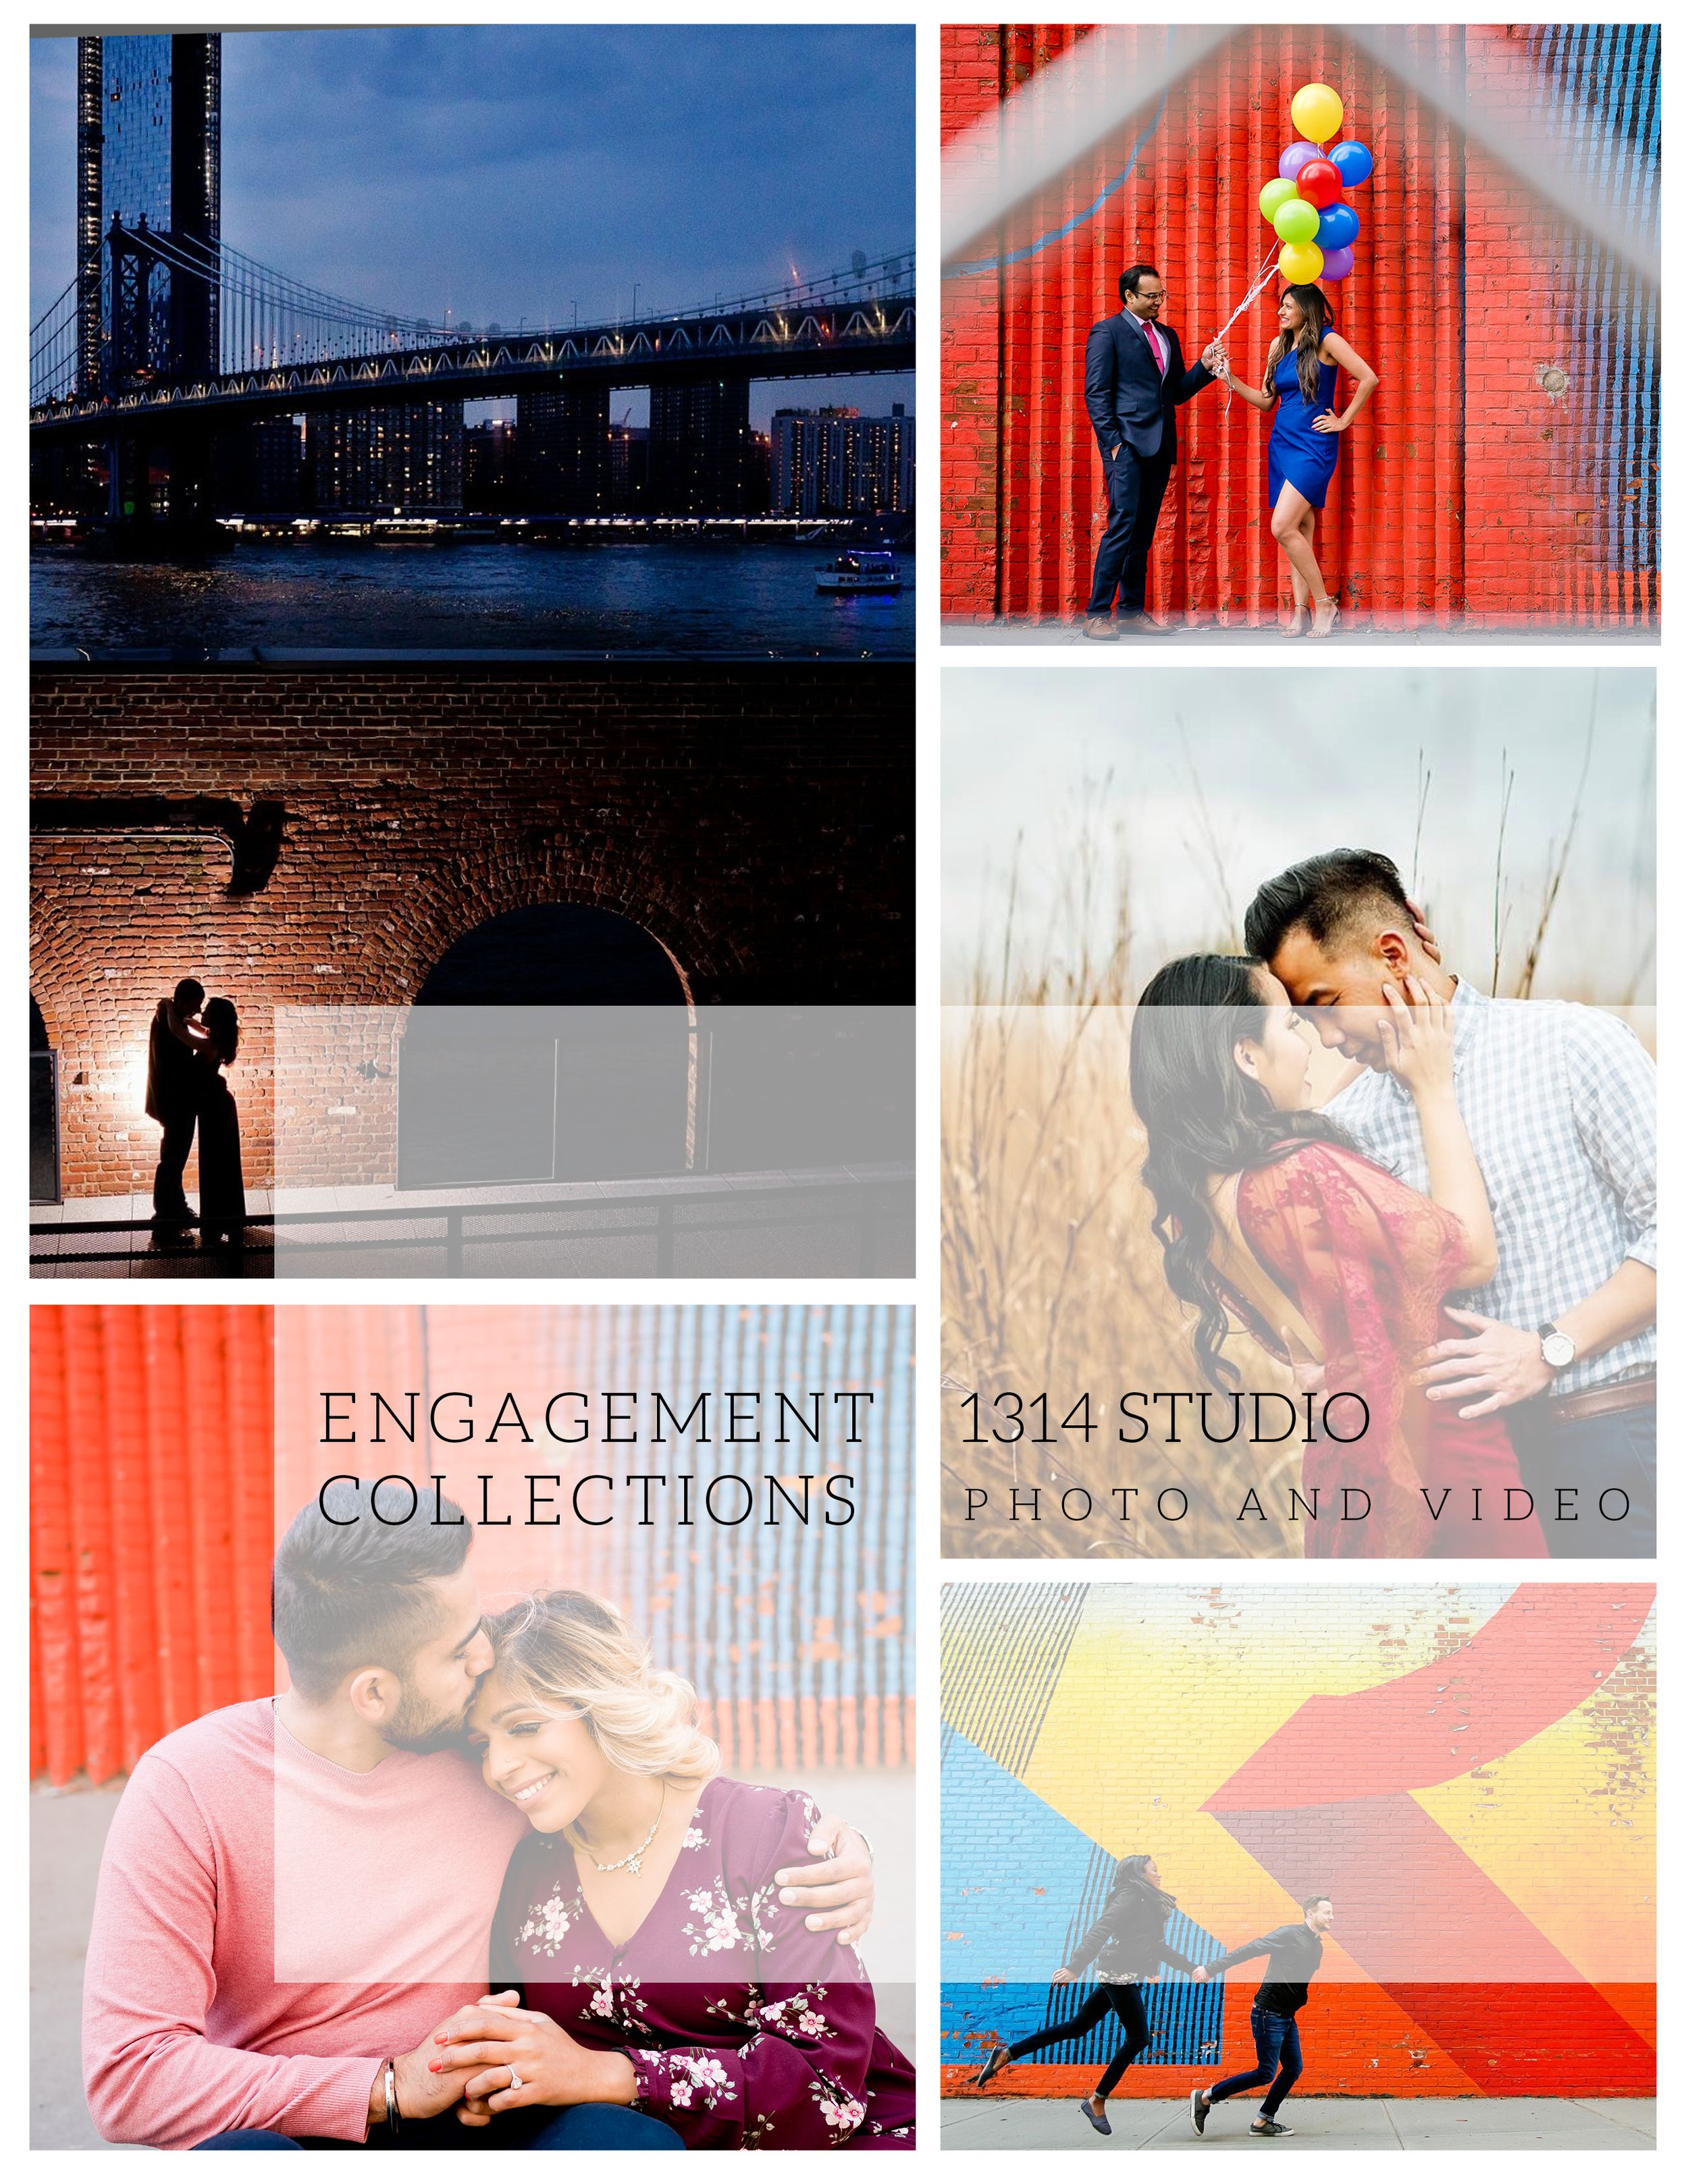 1314 studio engagement photo package